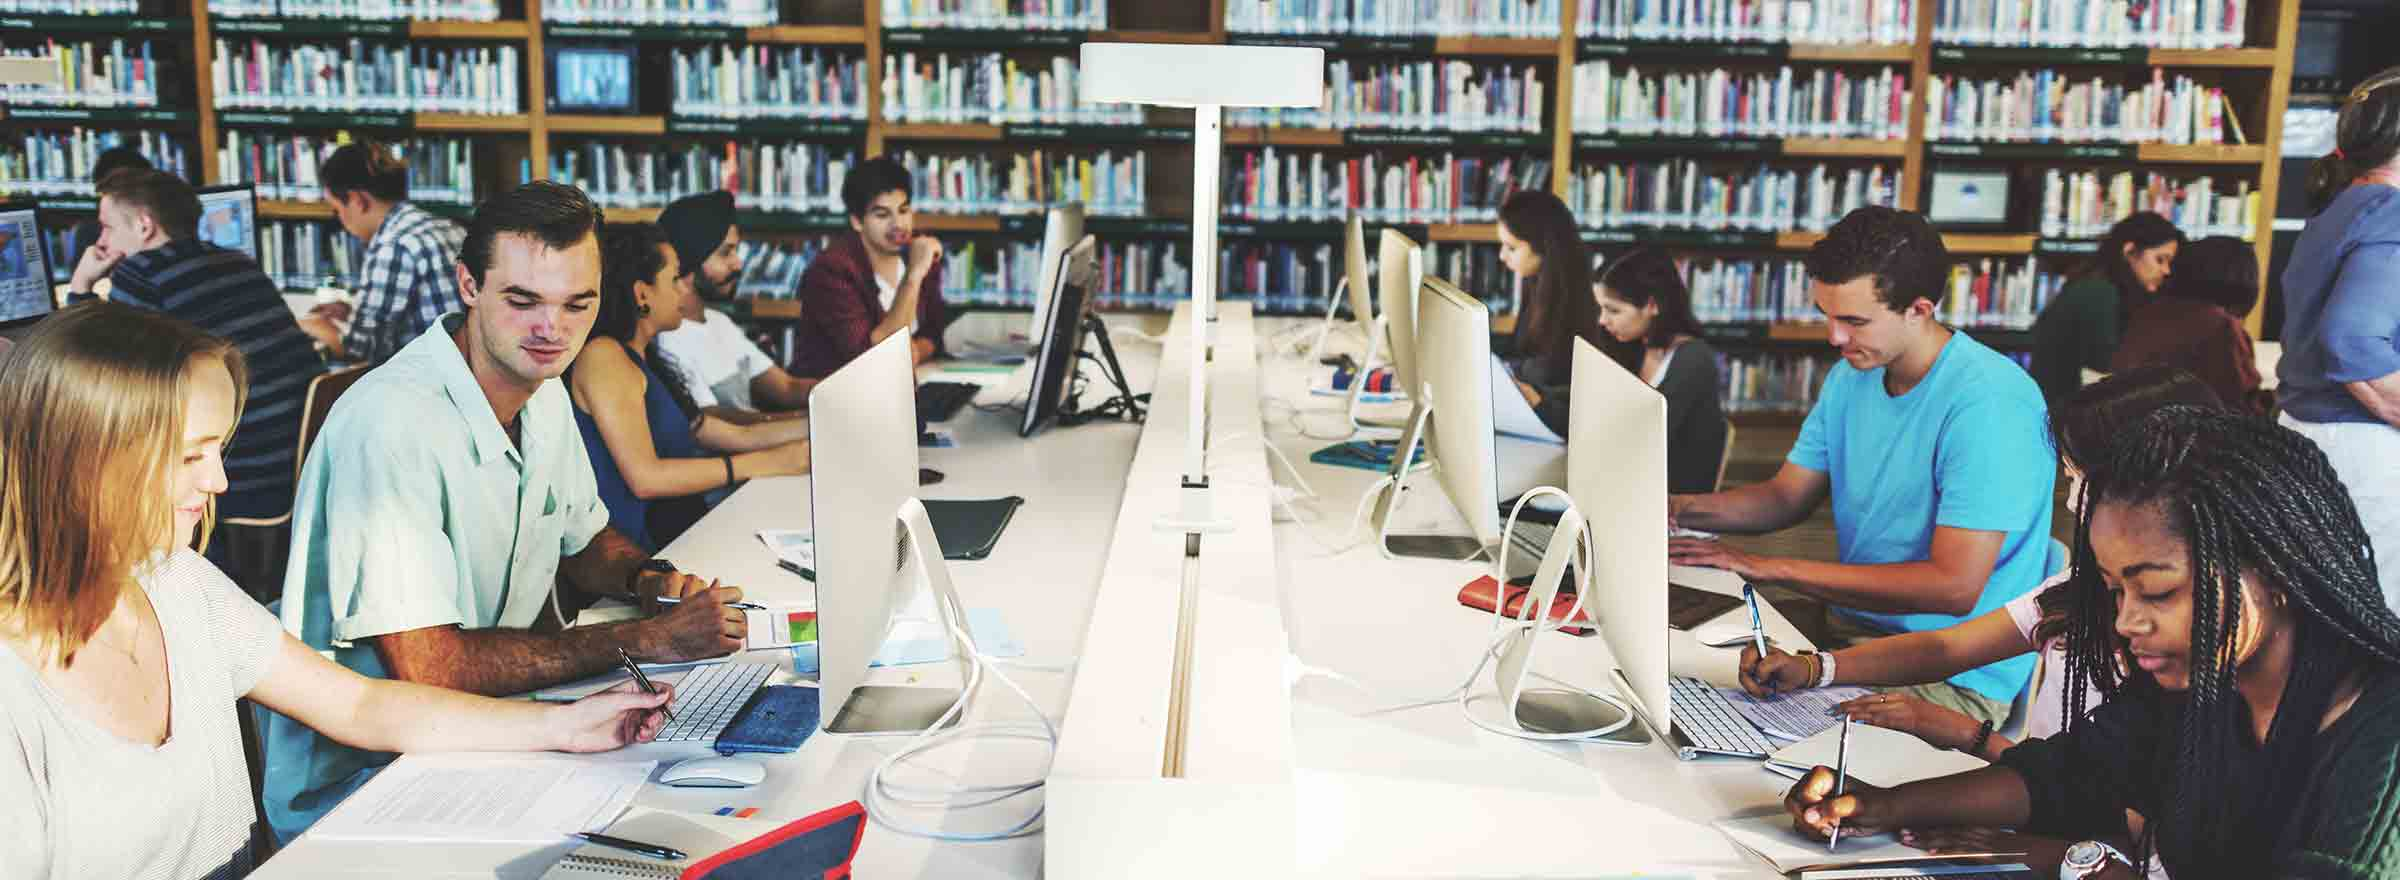 library patrons using computers